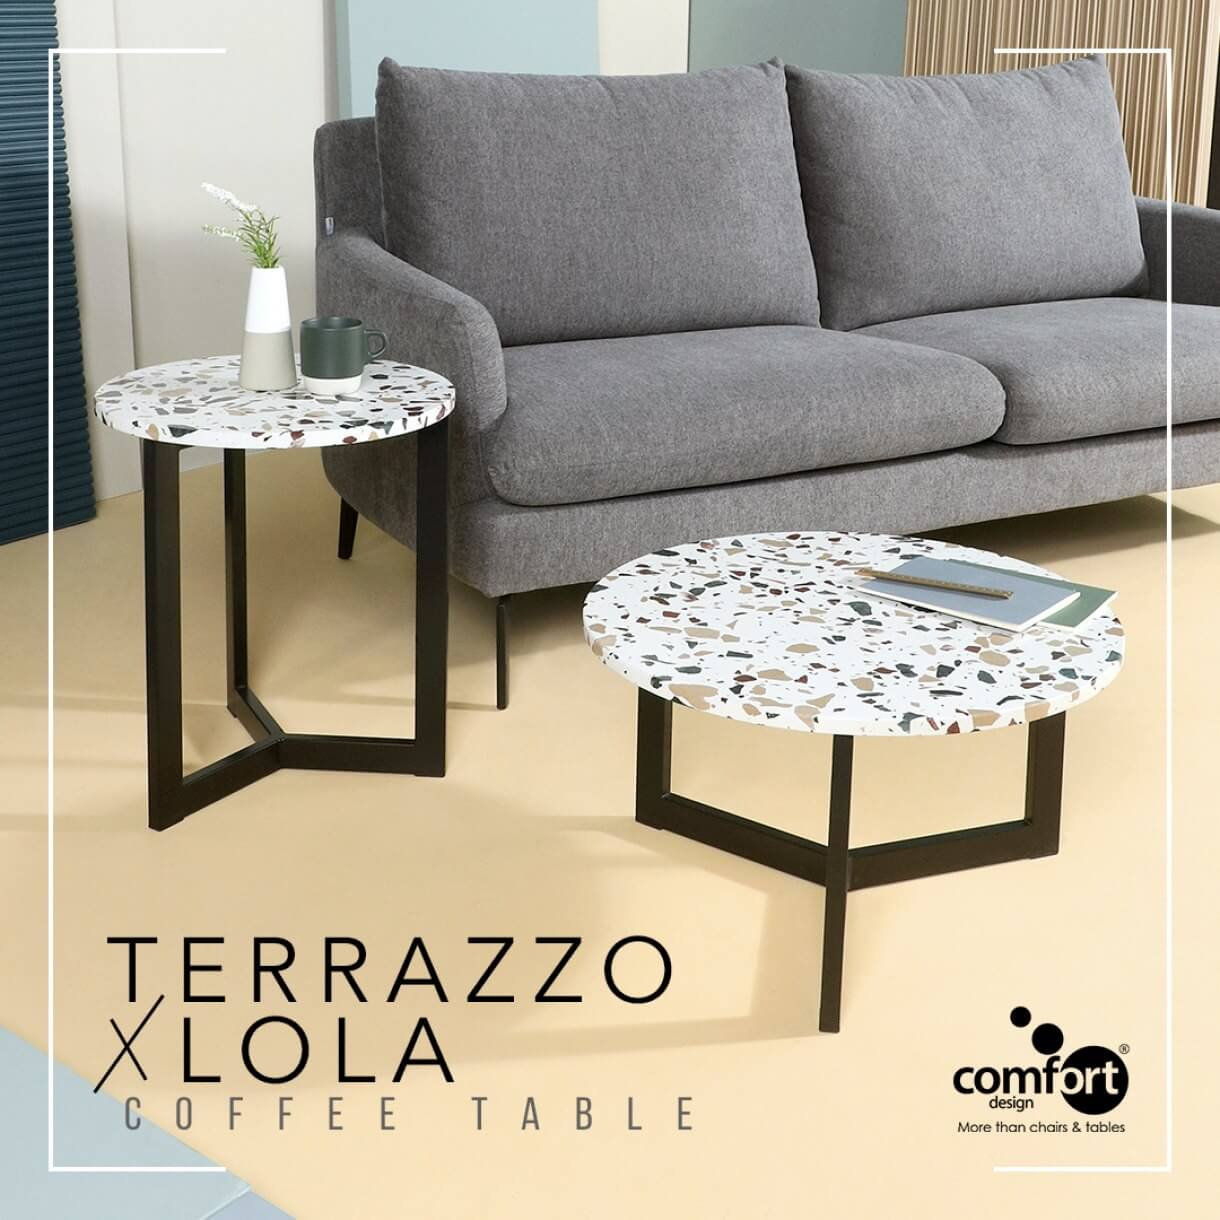 Retro Inspired Living Room with Lola Terrazzo Coffee Table - Comfort Furniture